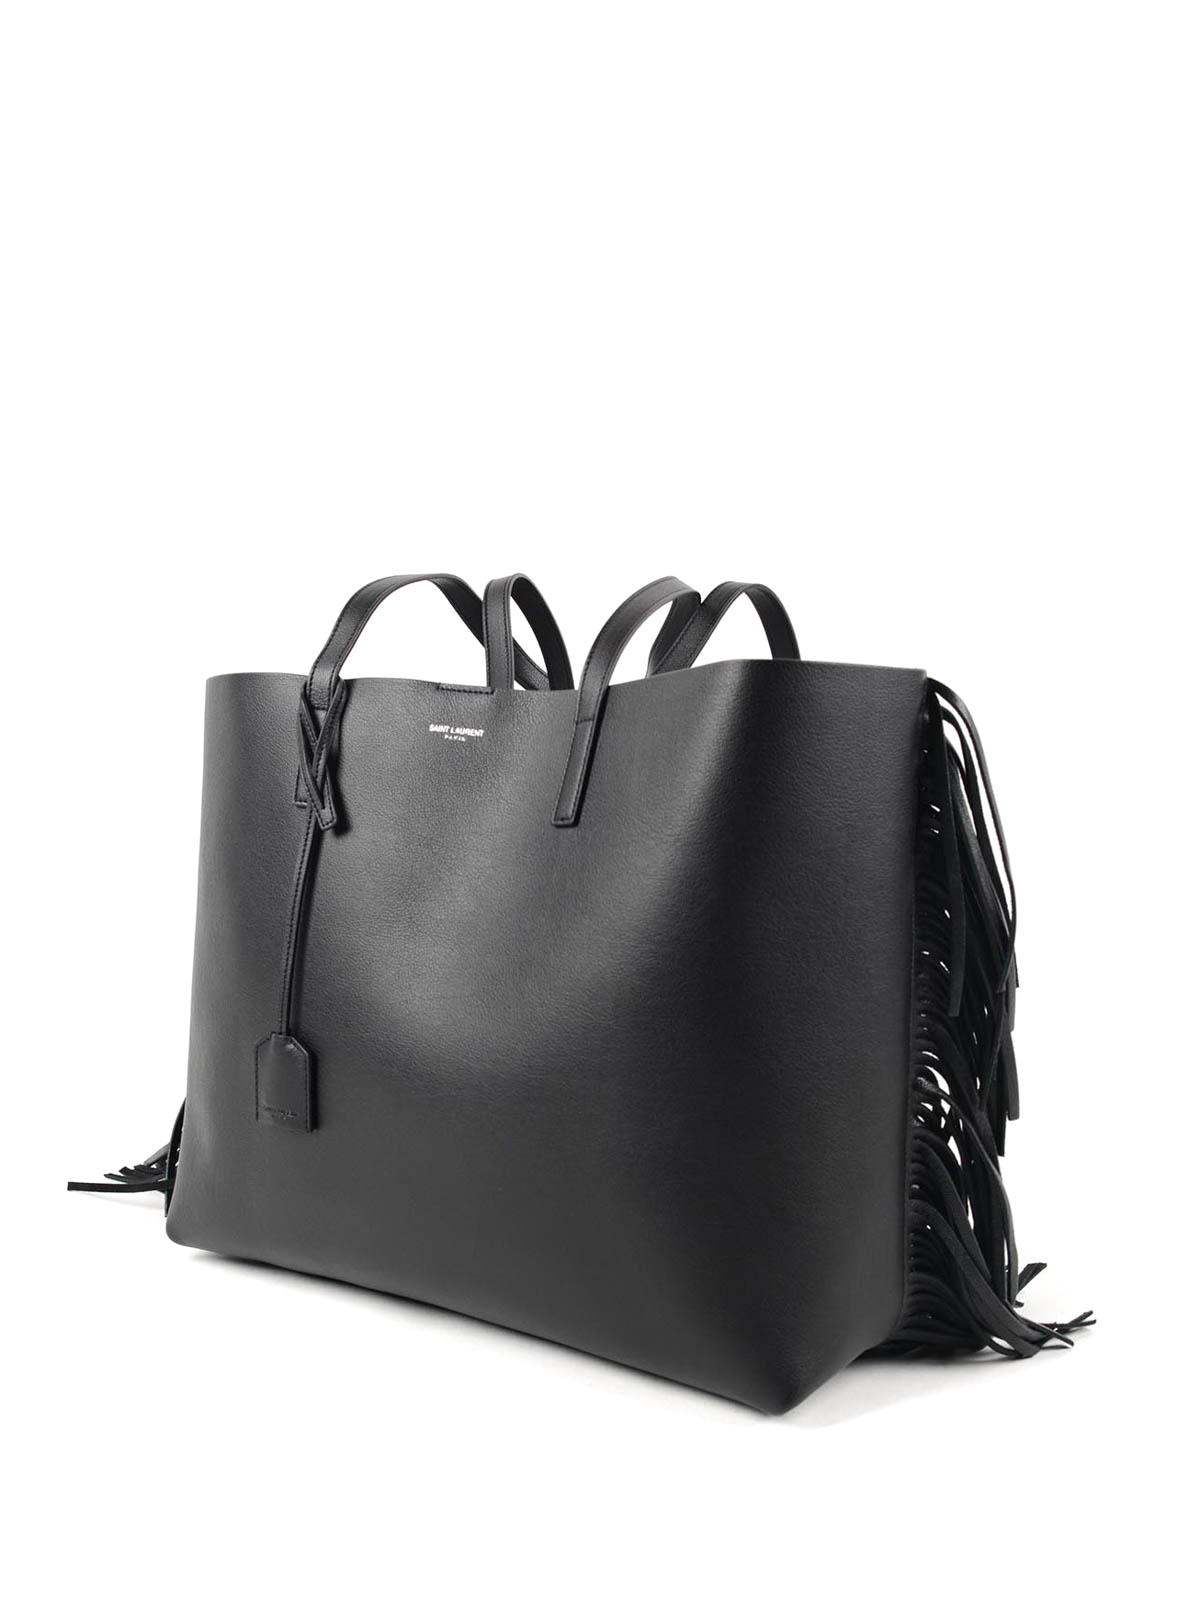 d3e75e8ecd39 Saint Laurent Black Fringe Tote | Stanford Center for Opportunity ...